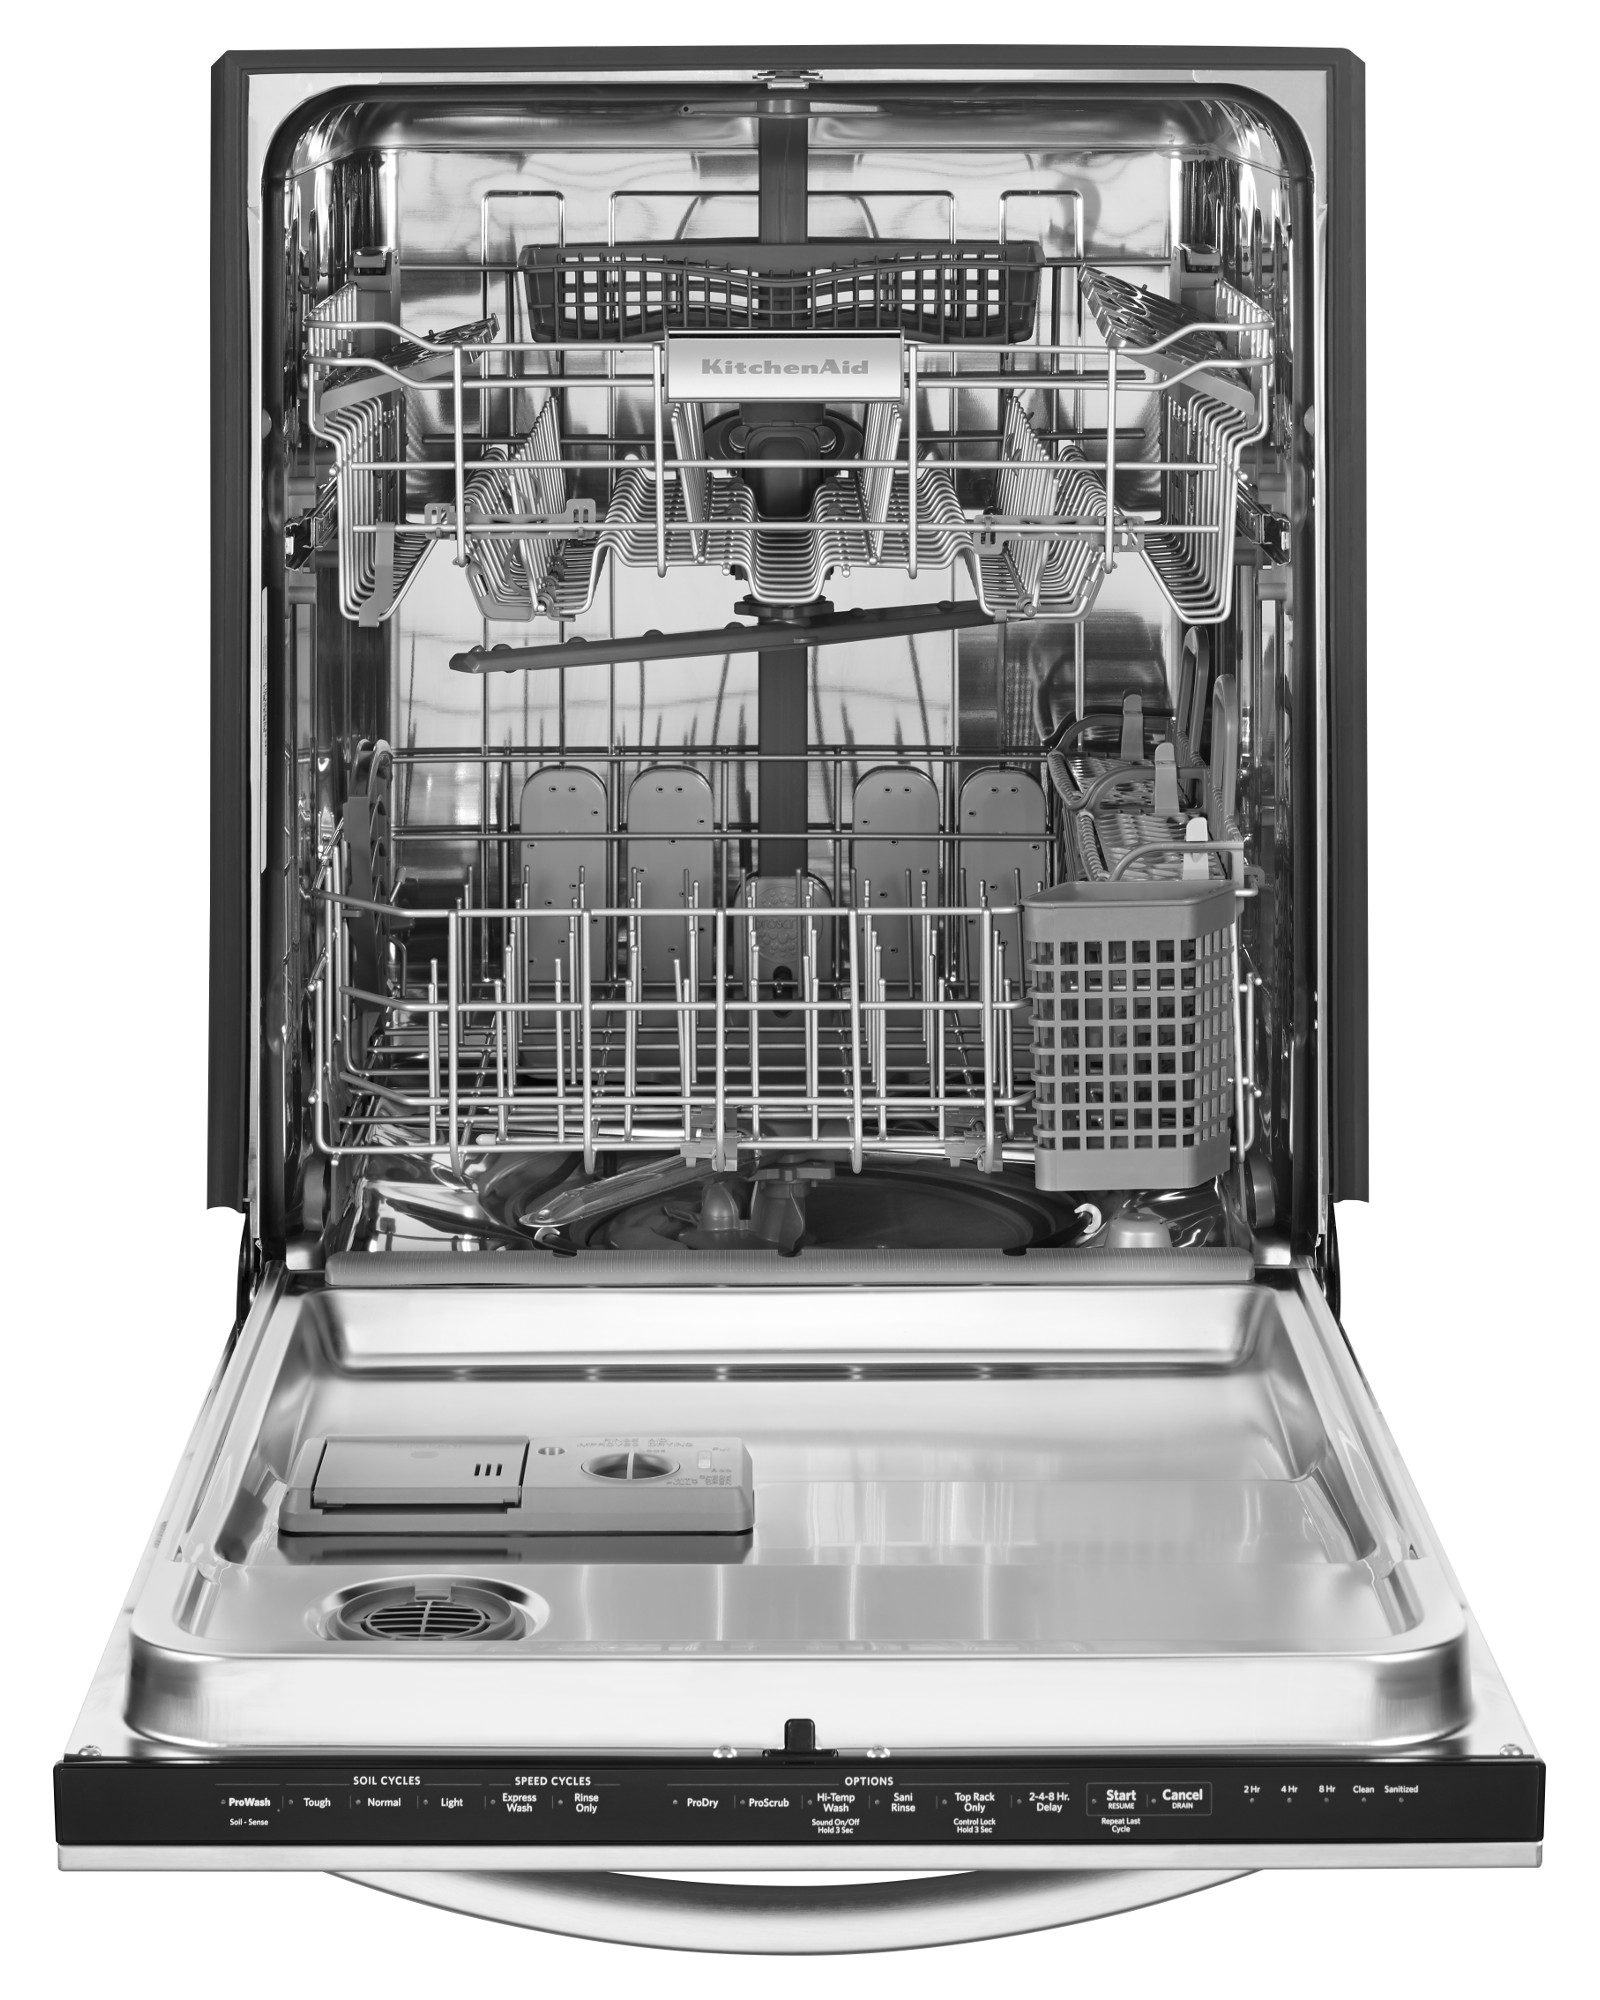 Kitchenaid Kdtm354dss 24 Quot Built In 6 Cycle Dishwasher W